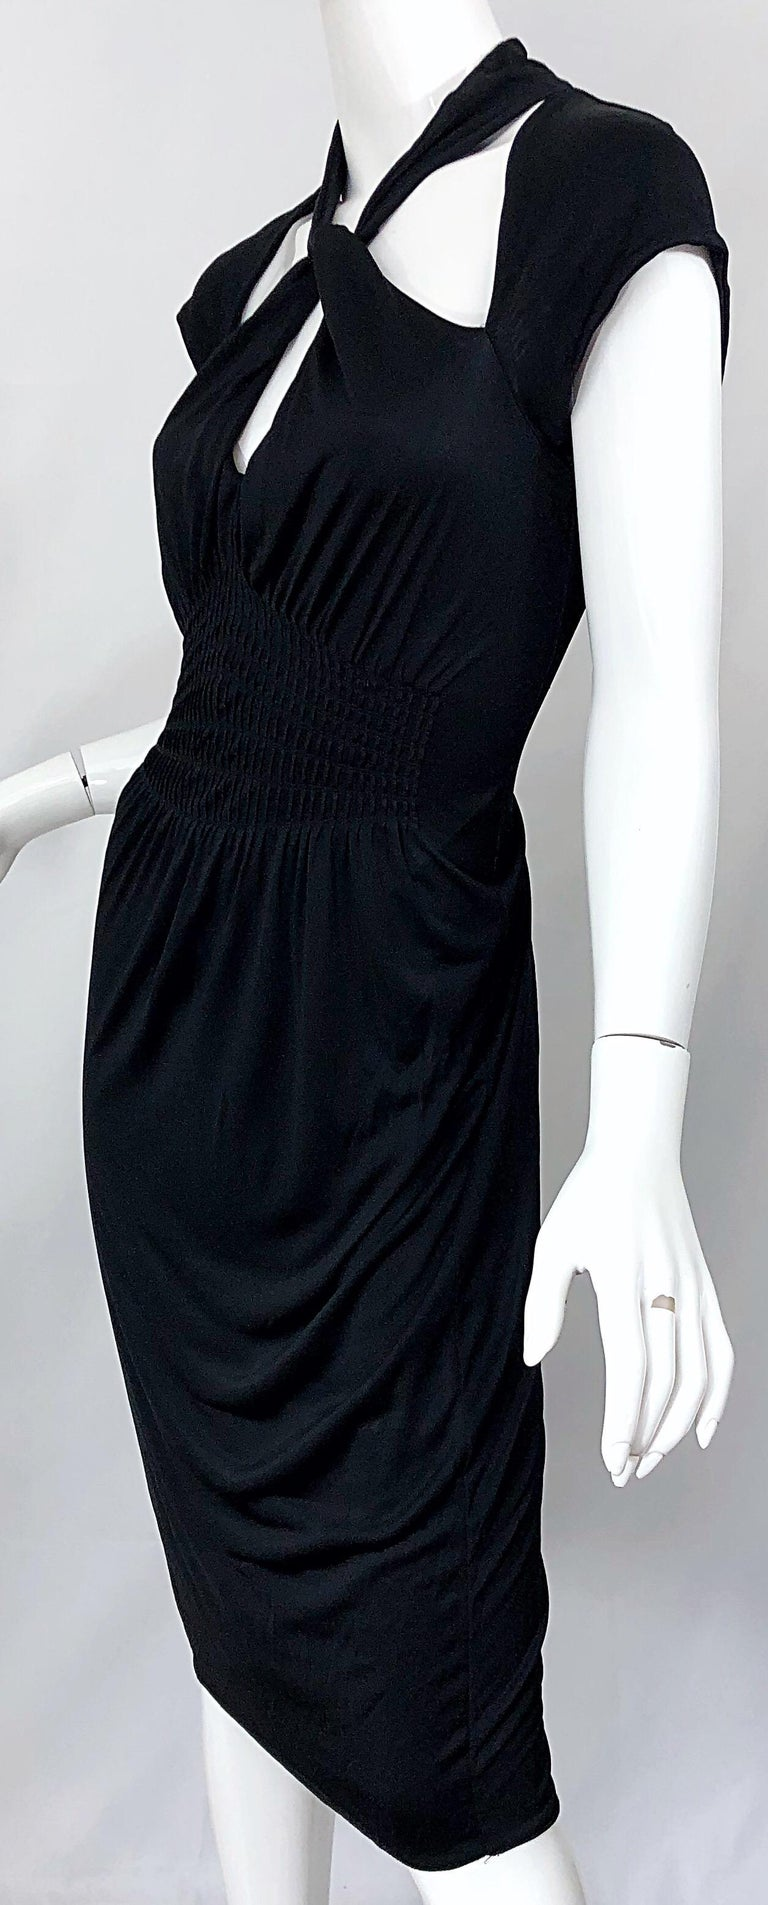 Gucci Tom Ford Fall 2003 Runway Black Cut Out Backless Stretch Jersey Dress  For Sale 9